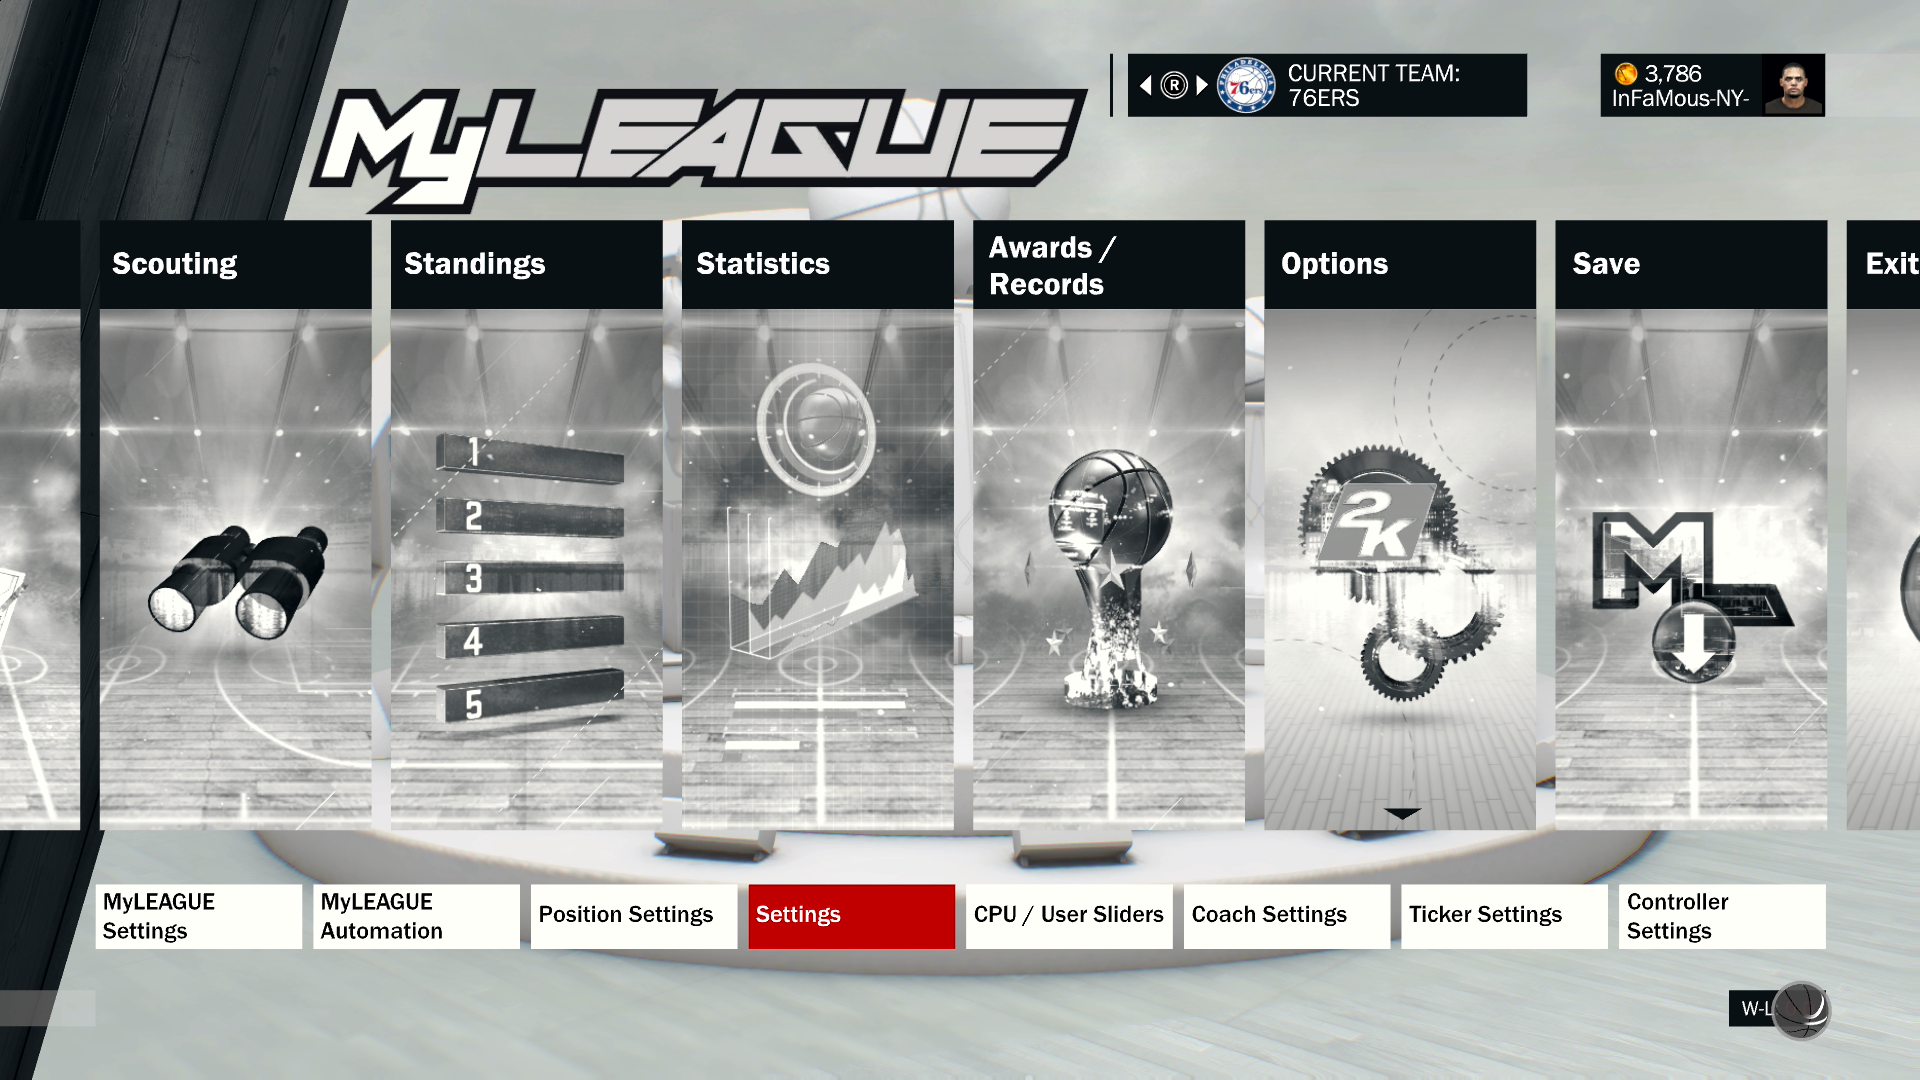 How To Set Up Ice Cube The Big 3 In NBA 2K17 – NBA 2K20